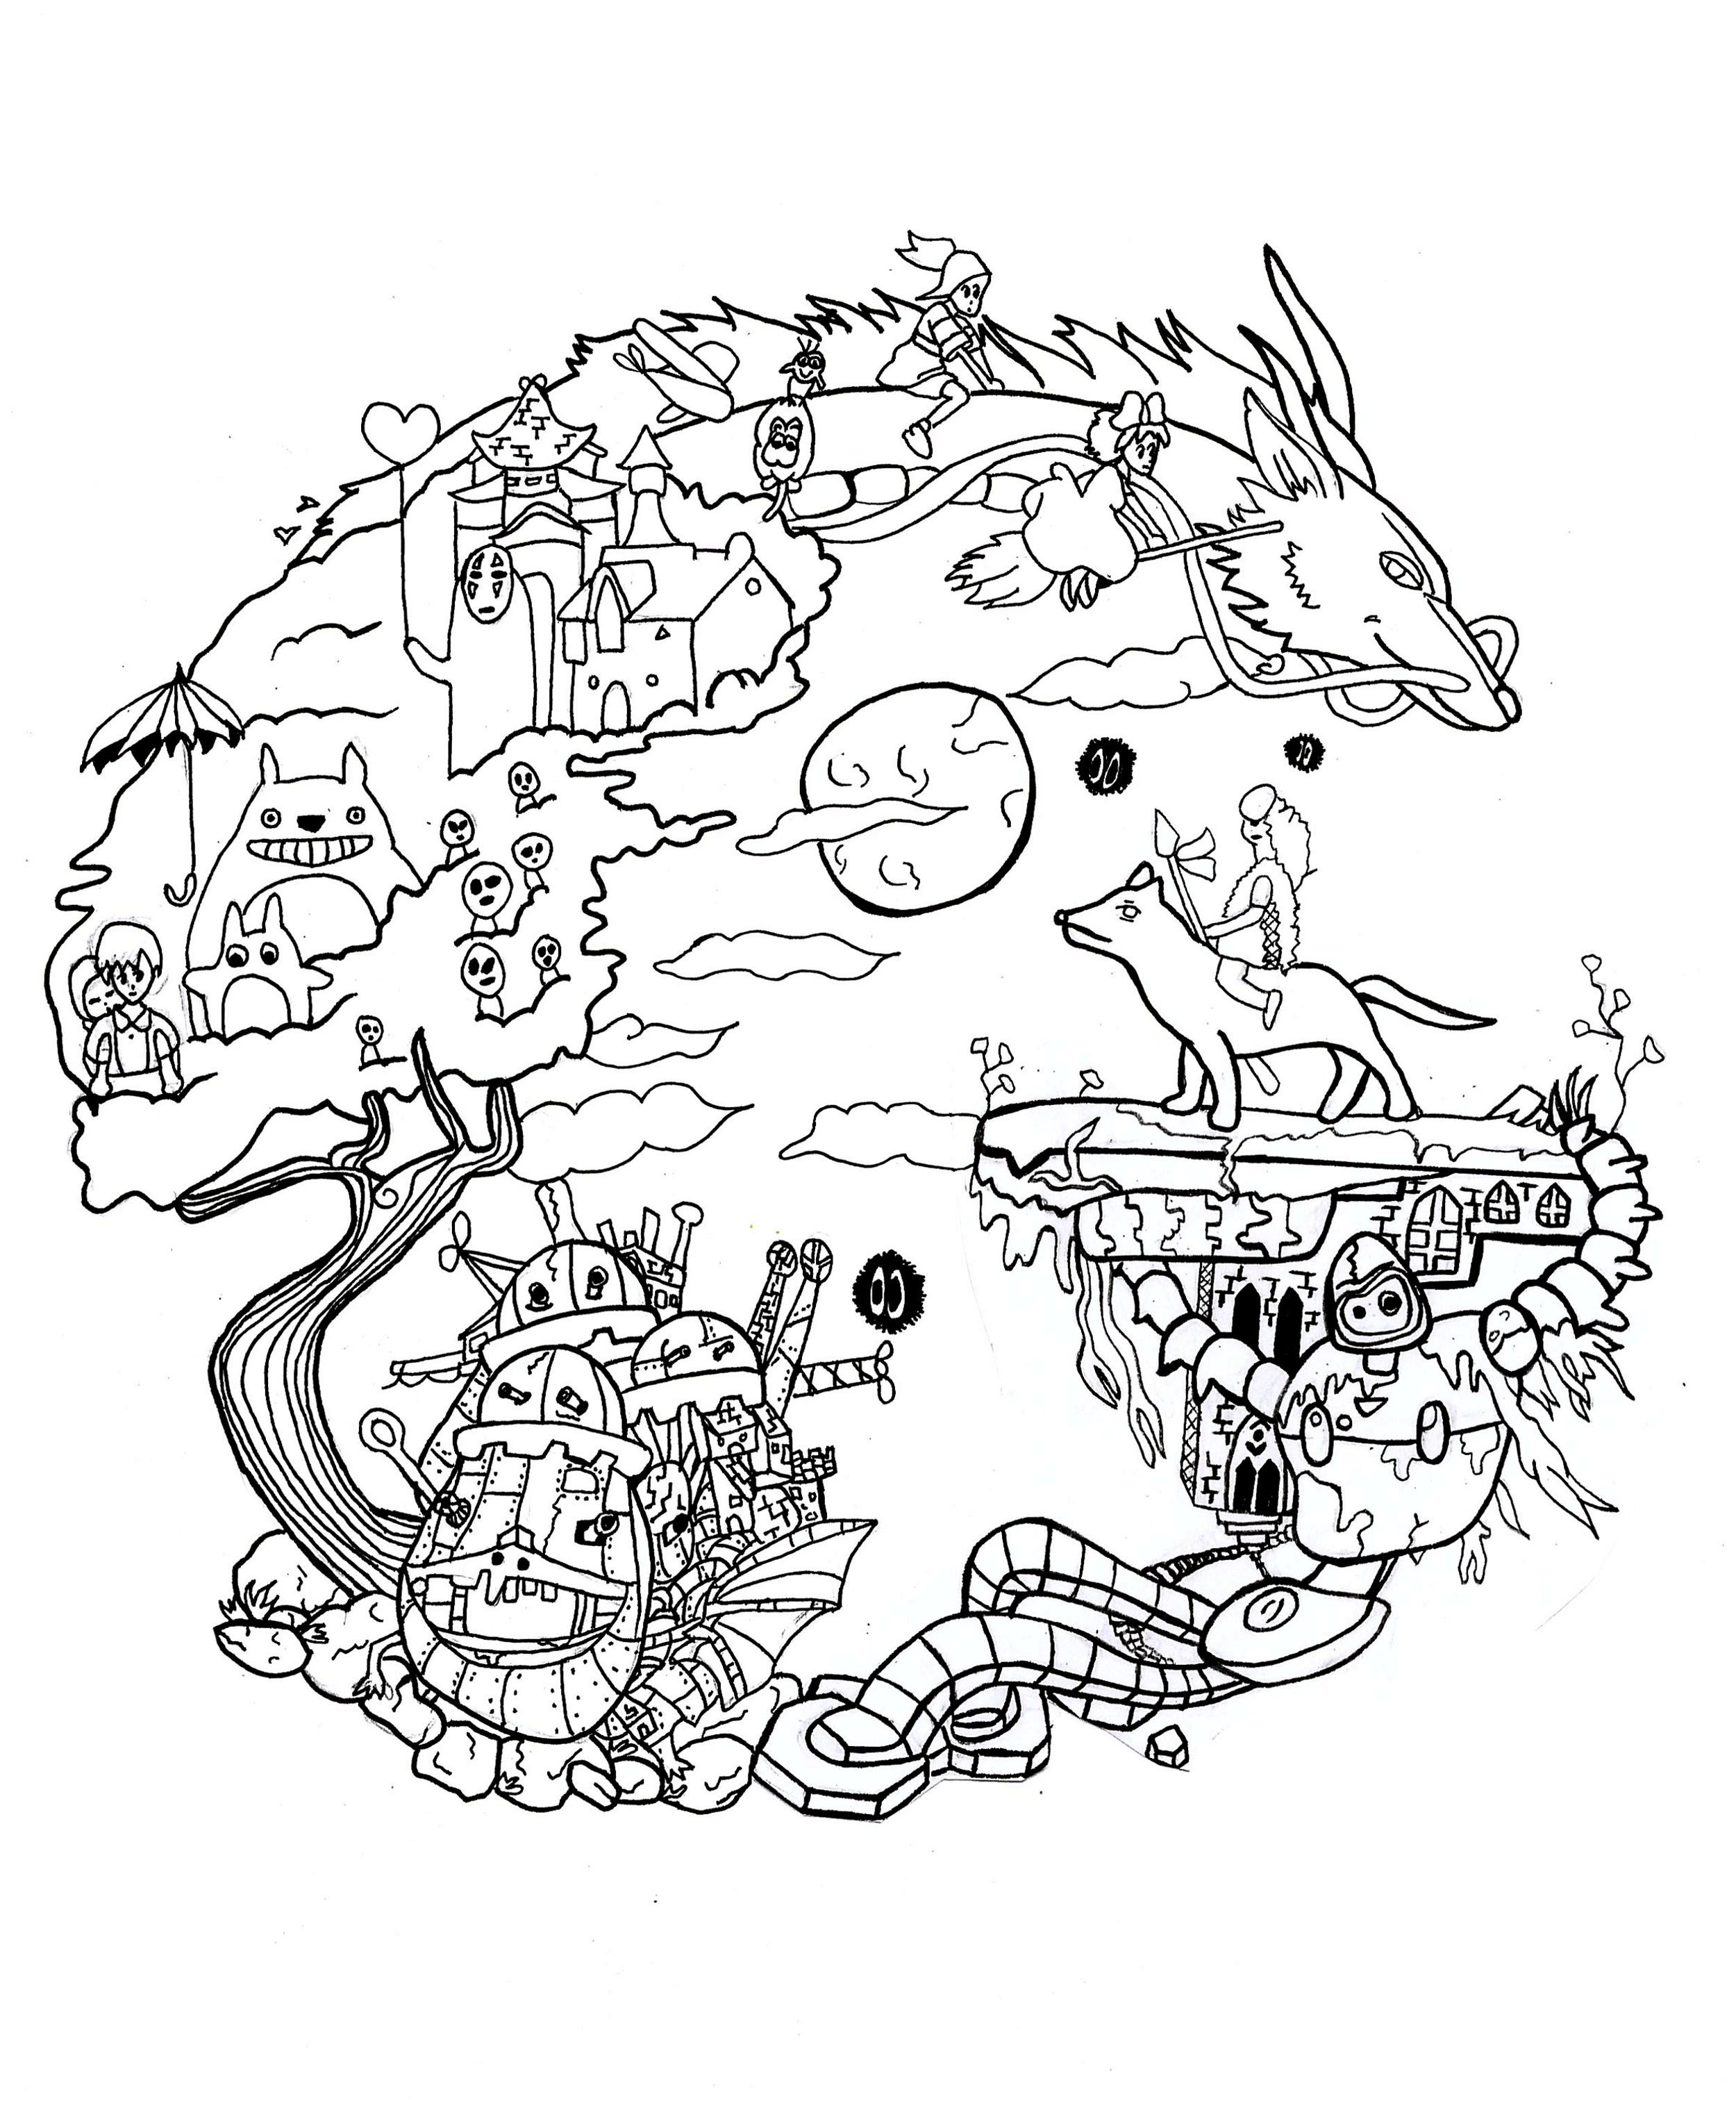 Studio Ghibli Manga Anime Coloring Pages For Adults Just